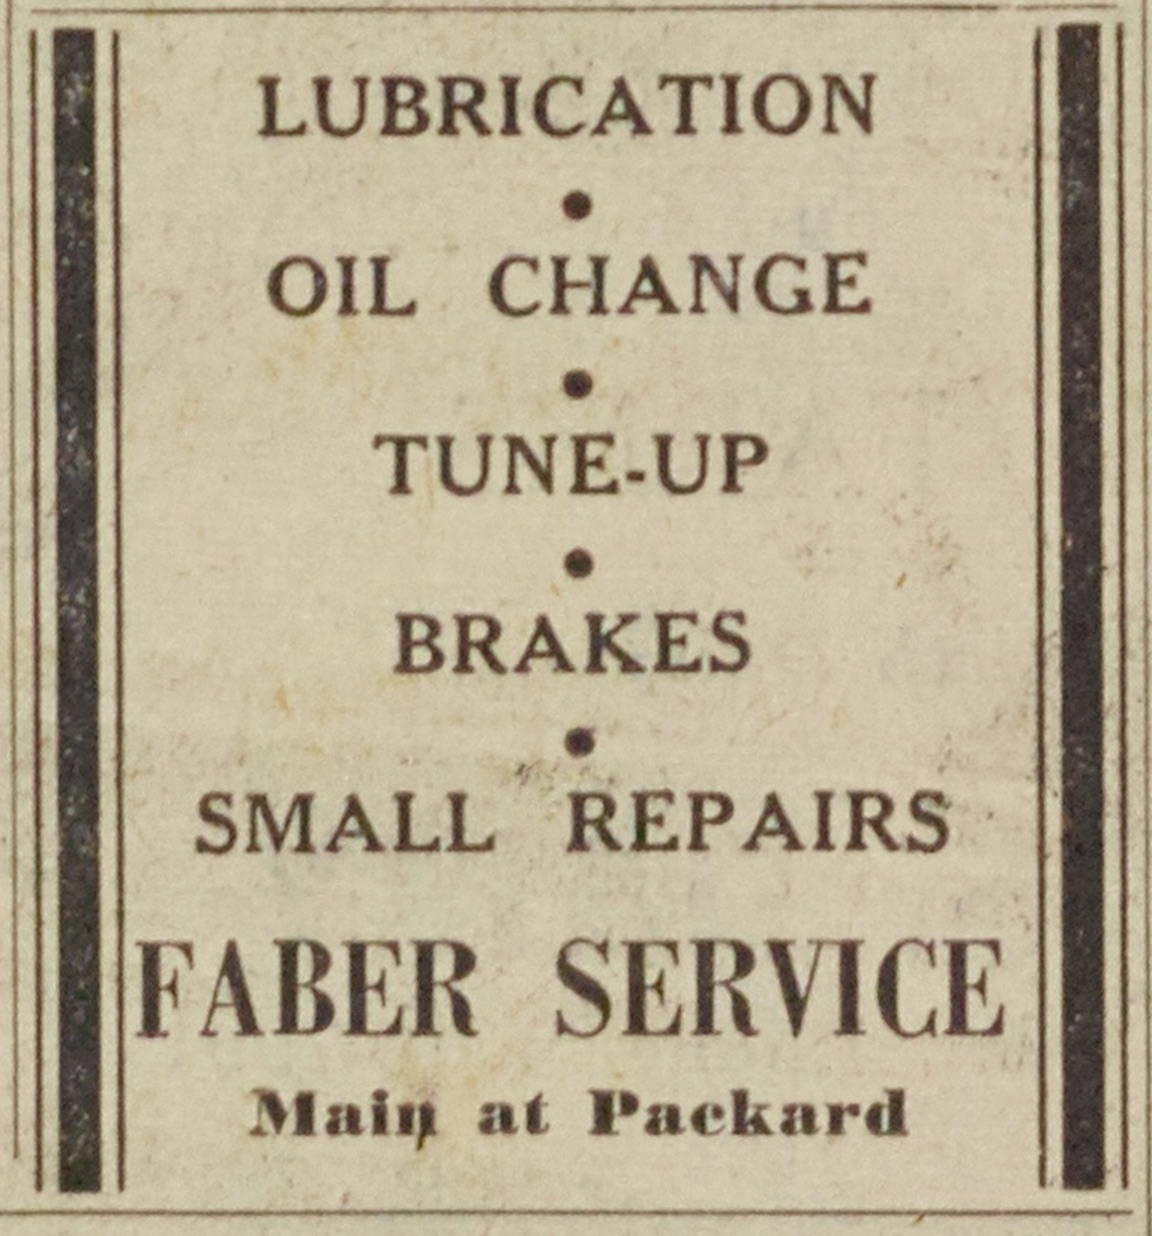 Faber Service image